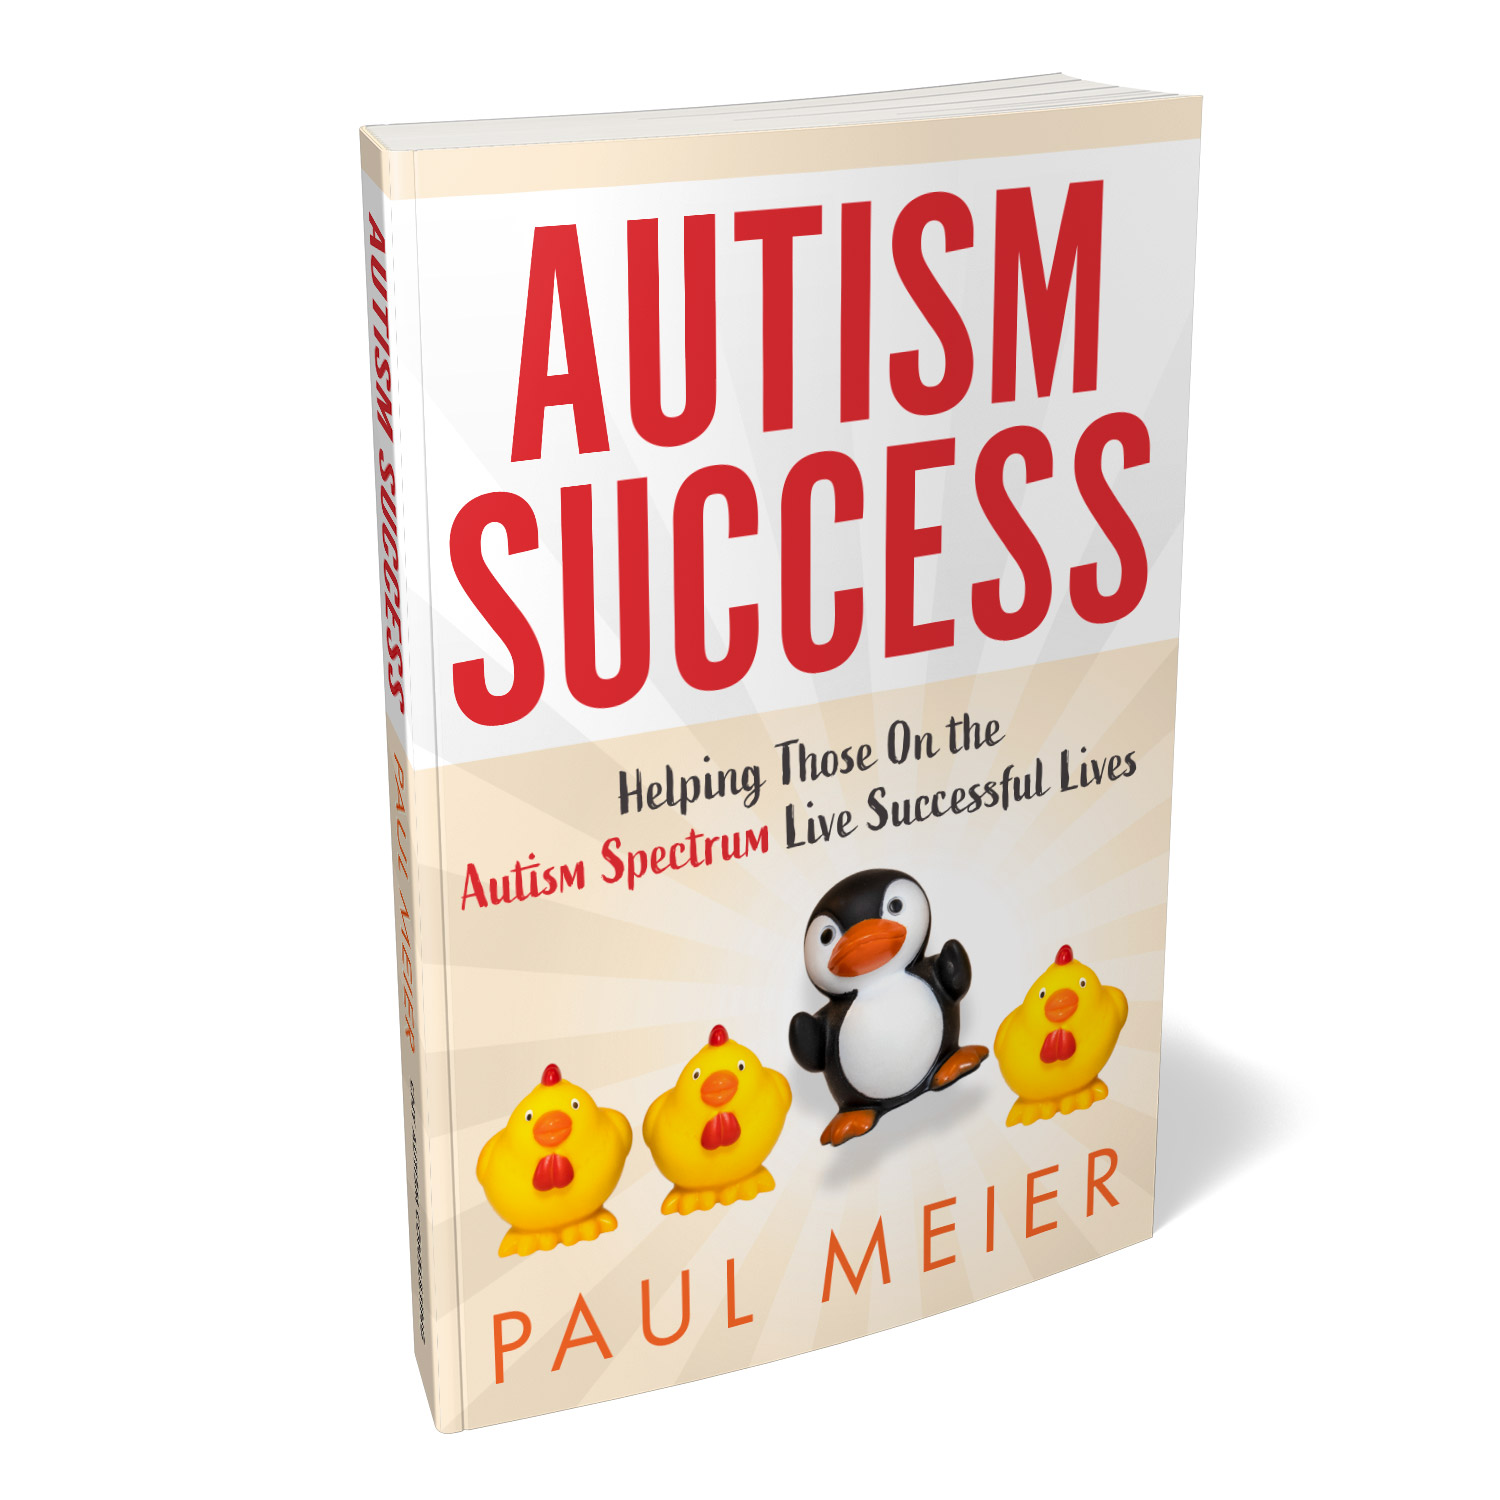 'Autism Success' is useful coping guide, helping those with Autism lead successful live. The author is Paul Meier. The book cover design and interior formatting are by Mark Thomas. To learn more about what Mark could do for your book, please visit coverness.com.